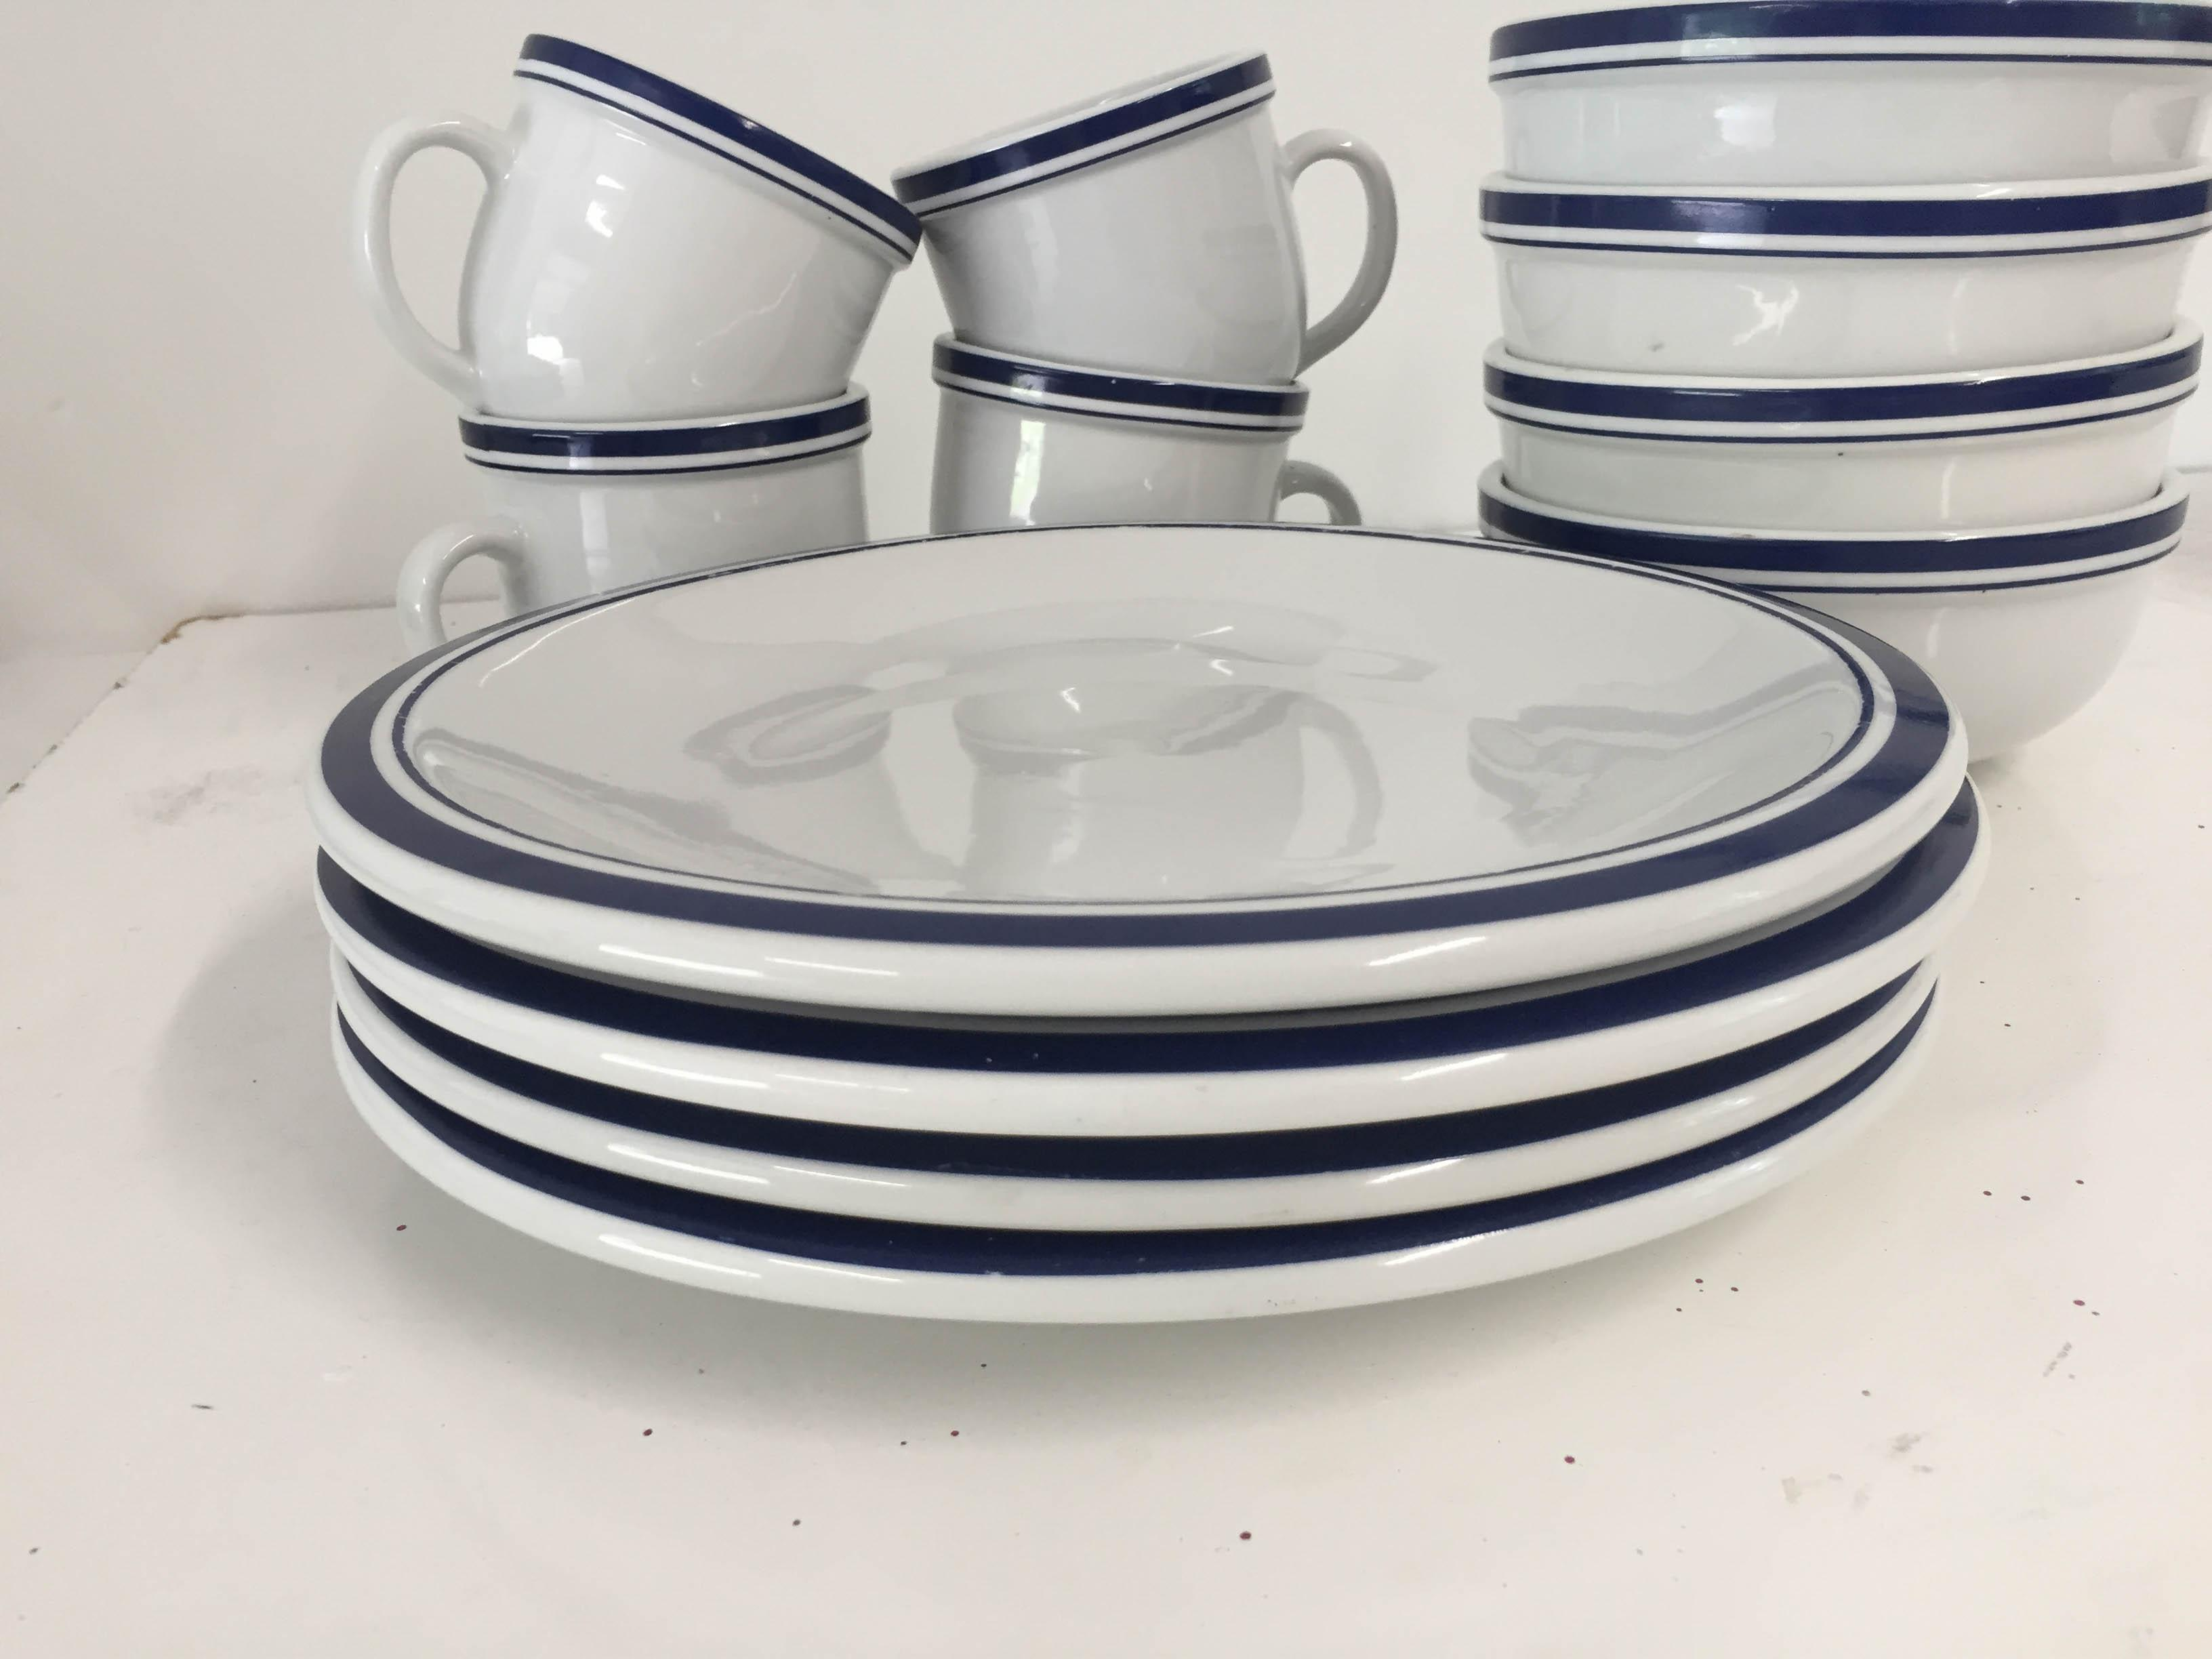 Culinary Arts Cafeware Nautical Blue u0026 White Dinnerware - Set of 12 - Image 4 of  sc 1 st  Chairish & Culinary Arts Cafeware Nautical Blue u0026 White Dinnerware - Set of 12 ...